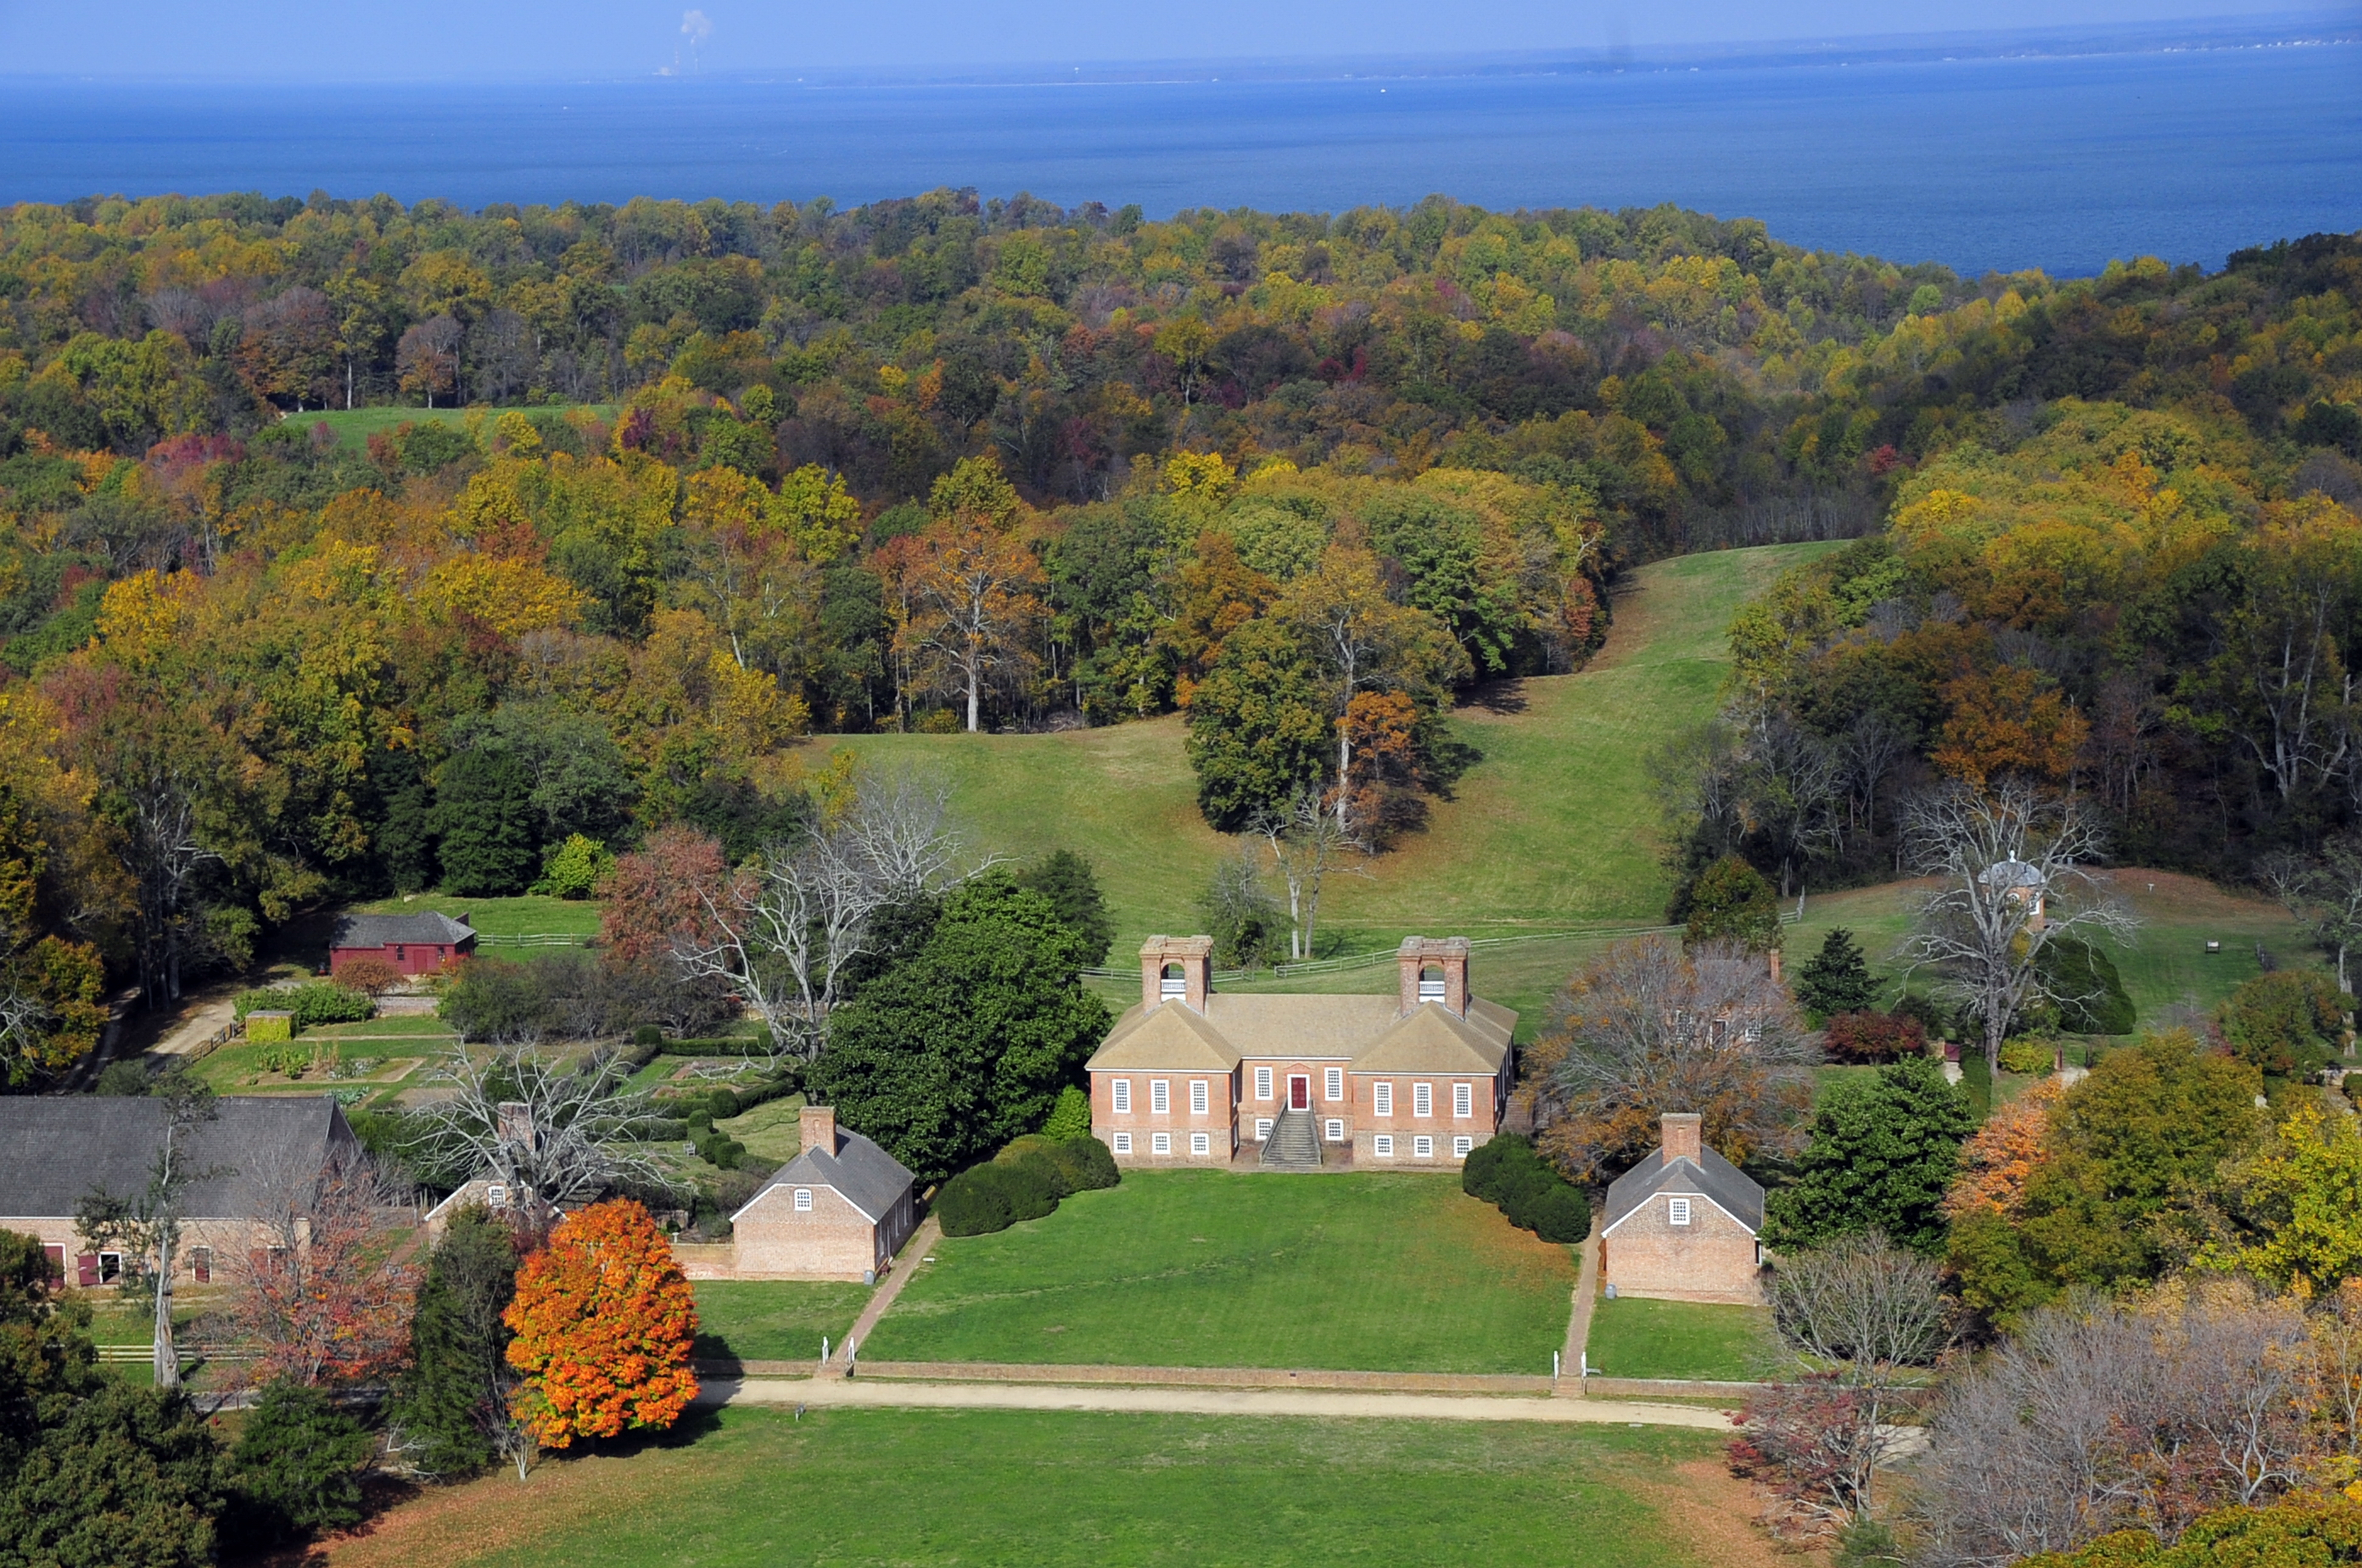 Aerial view of the Great House at Stratford Hall.